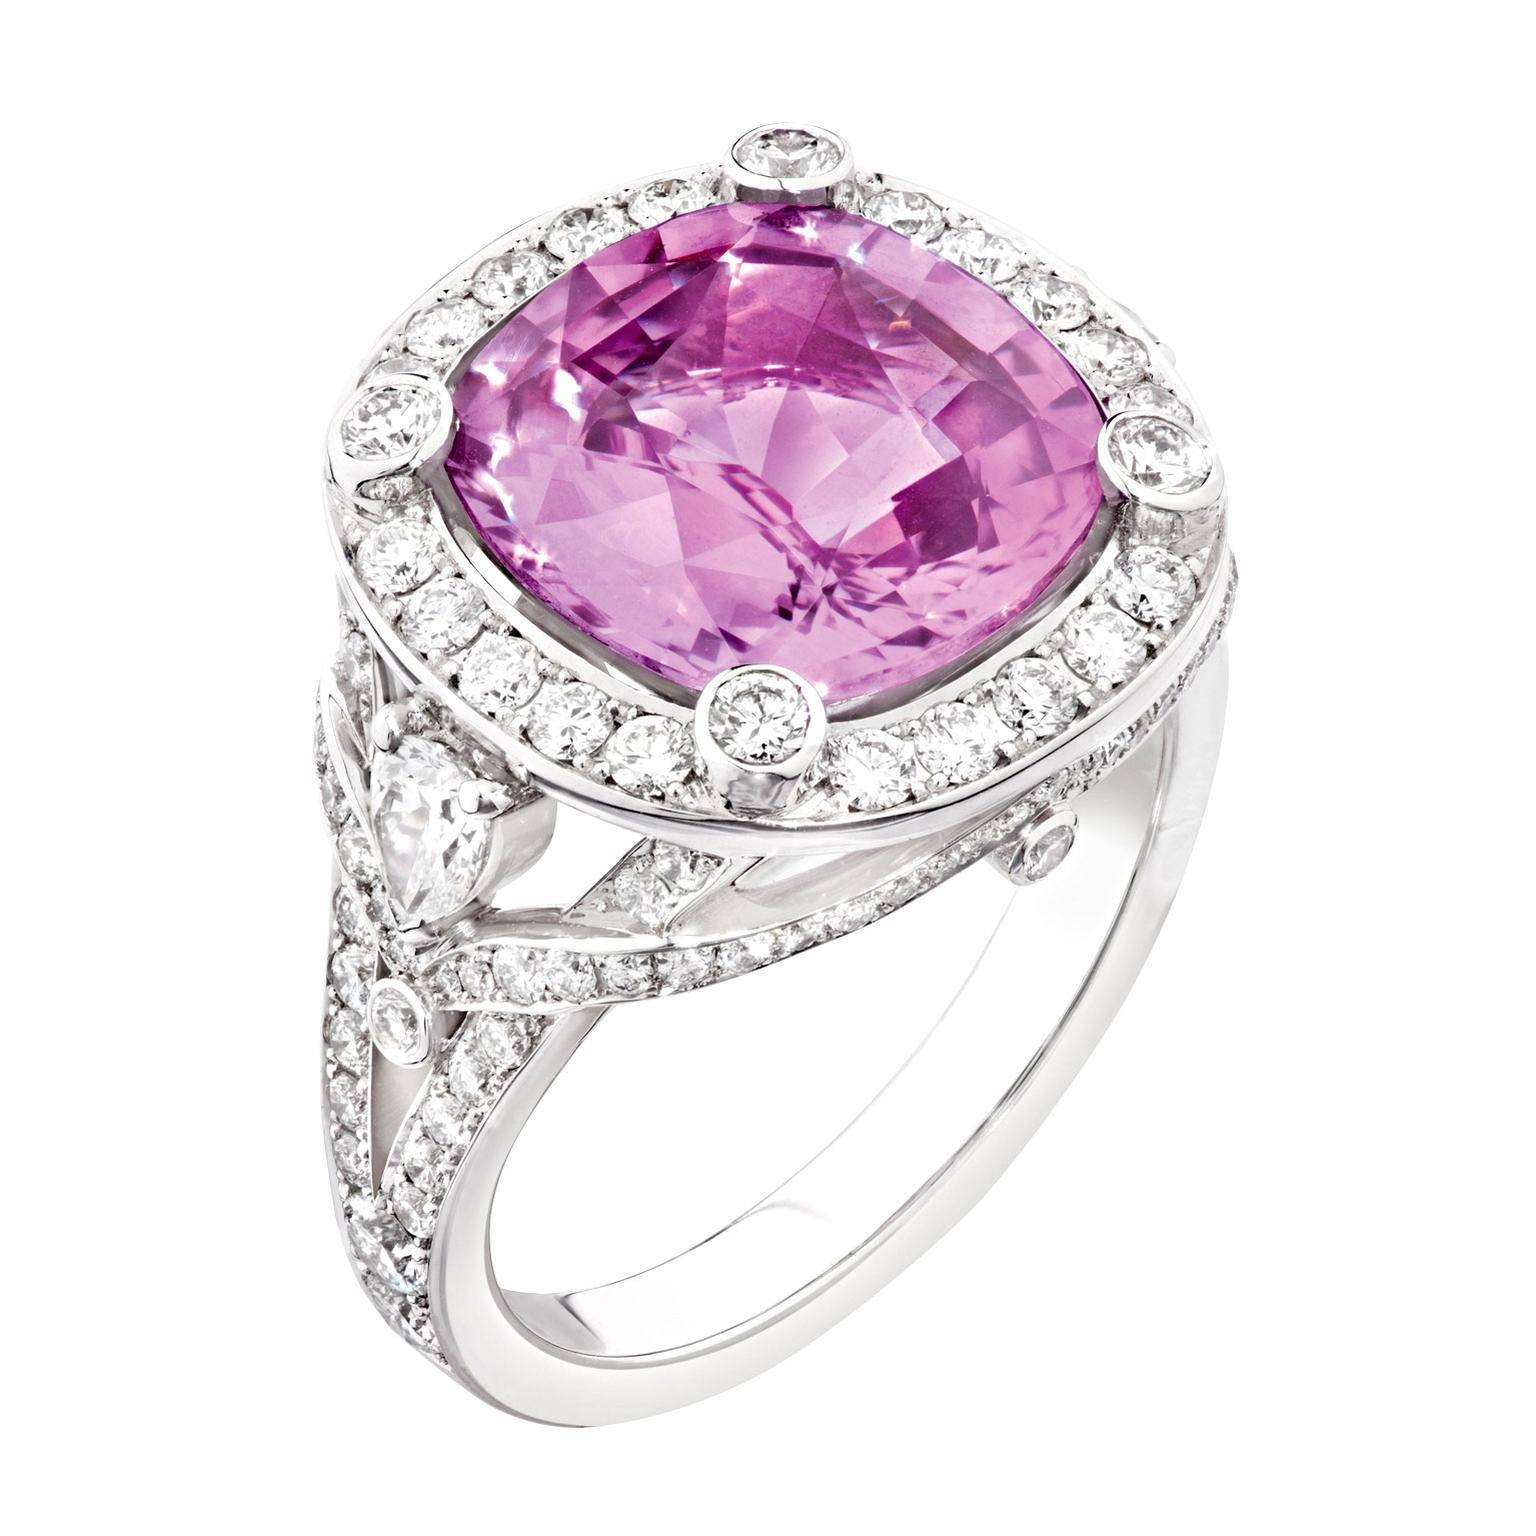 Cushion Cut Pink Sapphire Engagement Ring | Fabergé | The Intended For Pink Sapphire Engagement Rings With Diamonds (View 3 of 15)